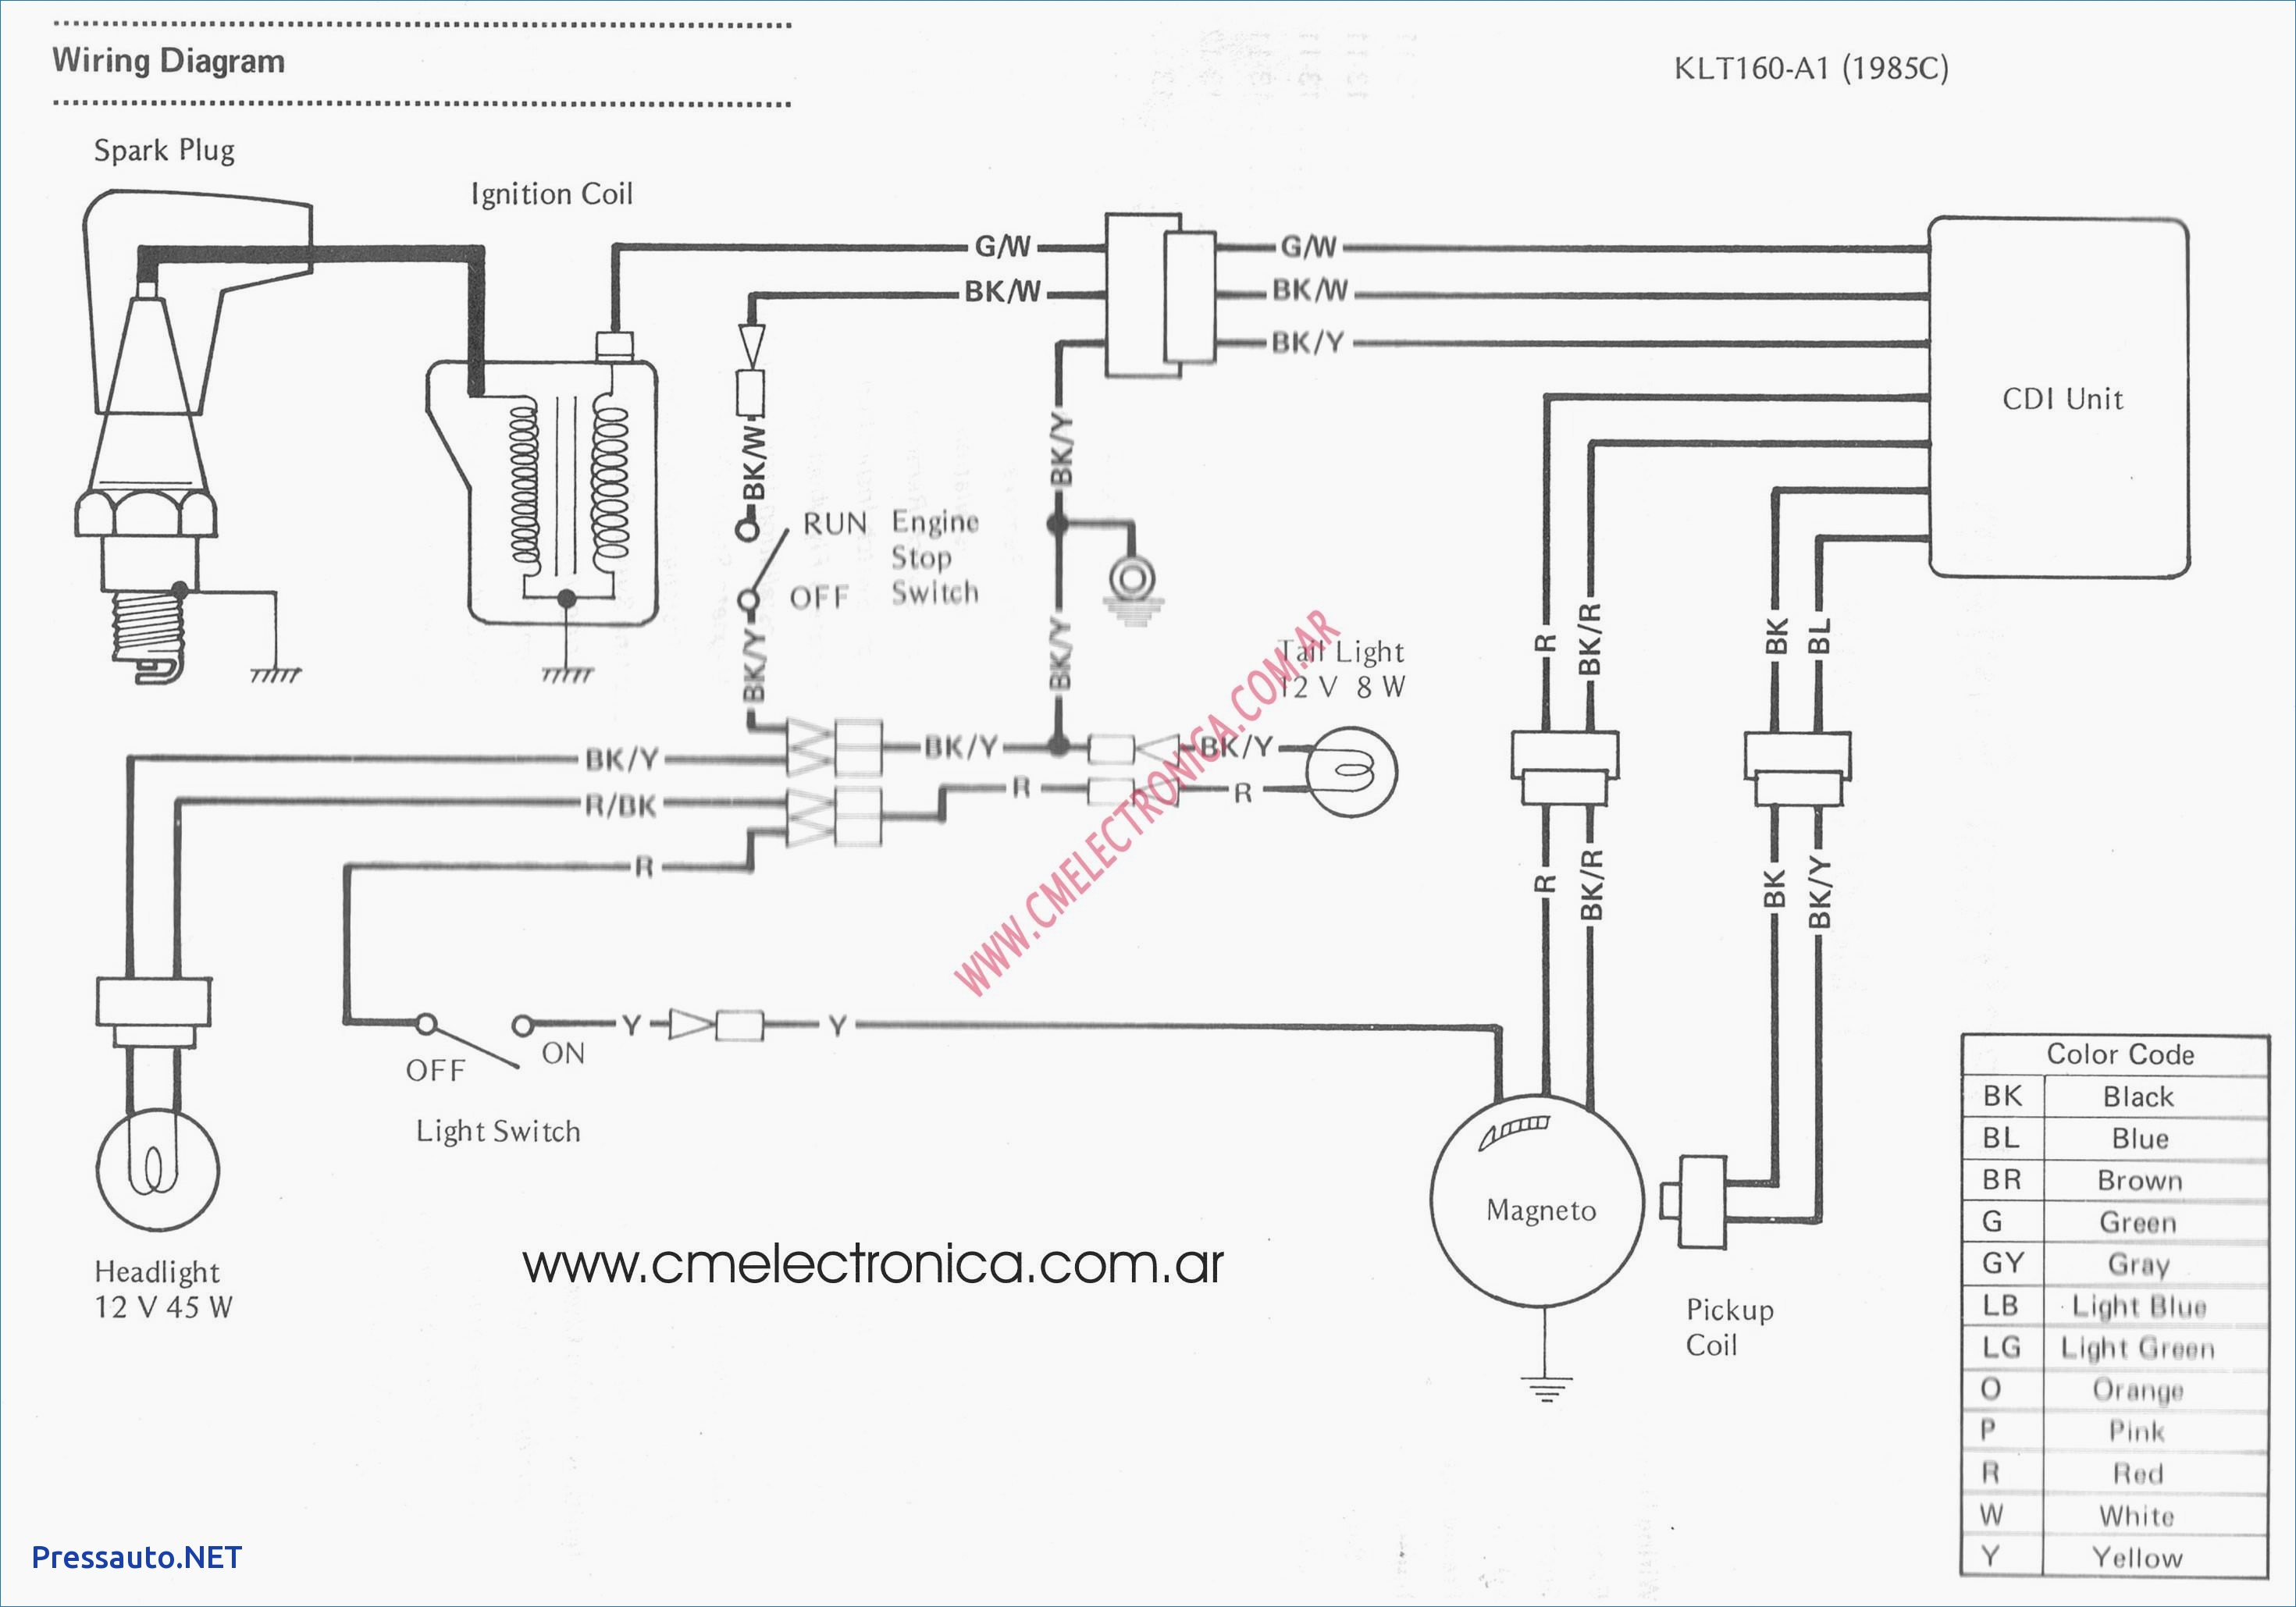 6E028 Mf Tractor Wiring Diagram | Digital Resources on white tractor power, nissan wiring diagram, hino wiring diagram, ford wiring diagram, white tractor steering, white tractor brochure, white tractor headlight switch, hesston wiring diagram, oliver wiring diagram, alfa romeo wiring diagram, western star wiring diagram, white tractor tires,